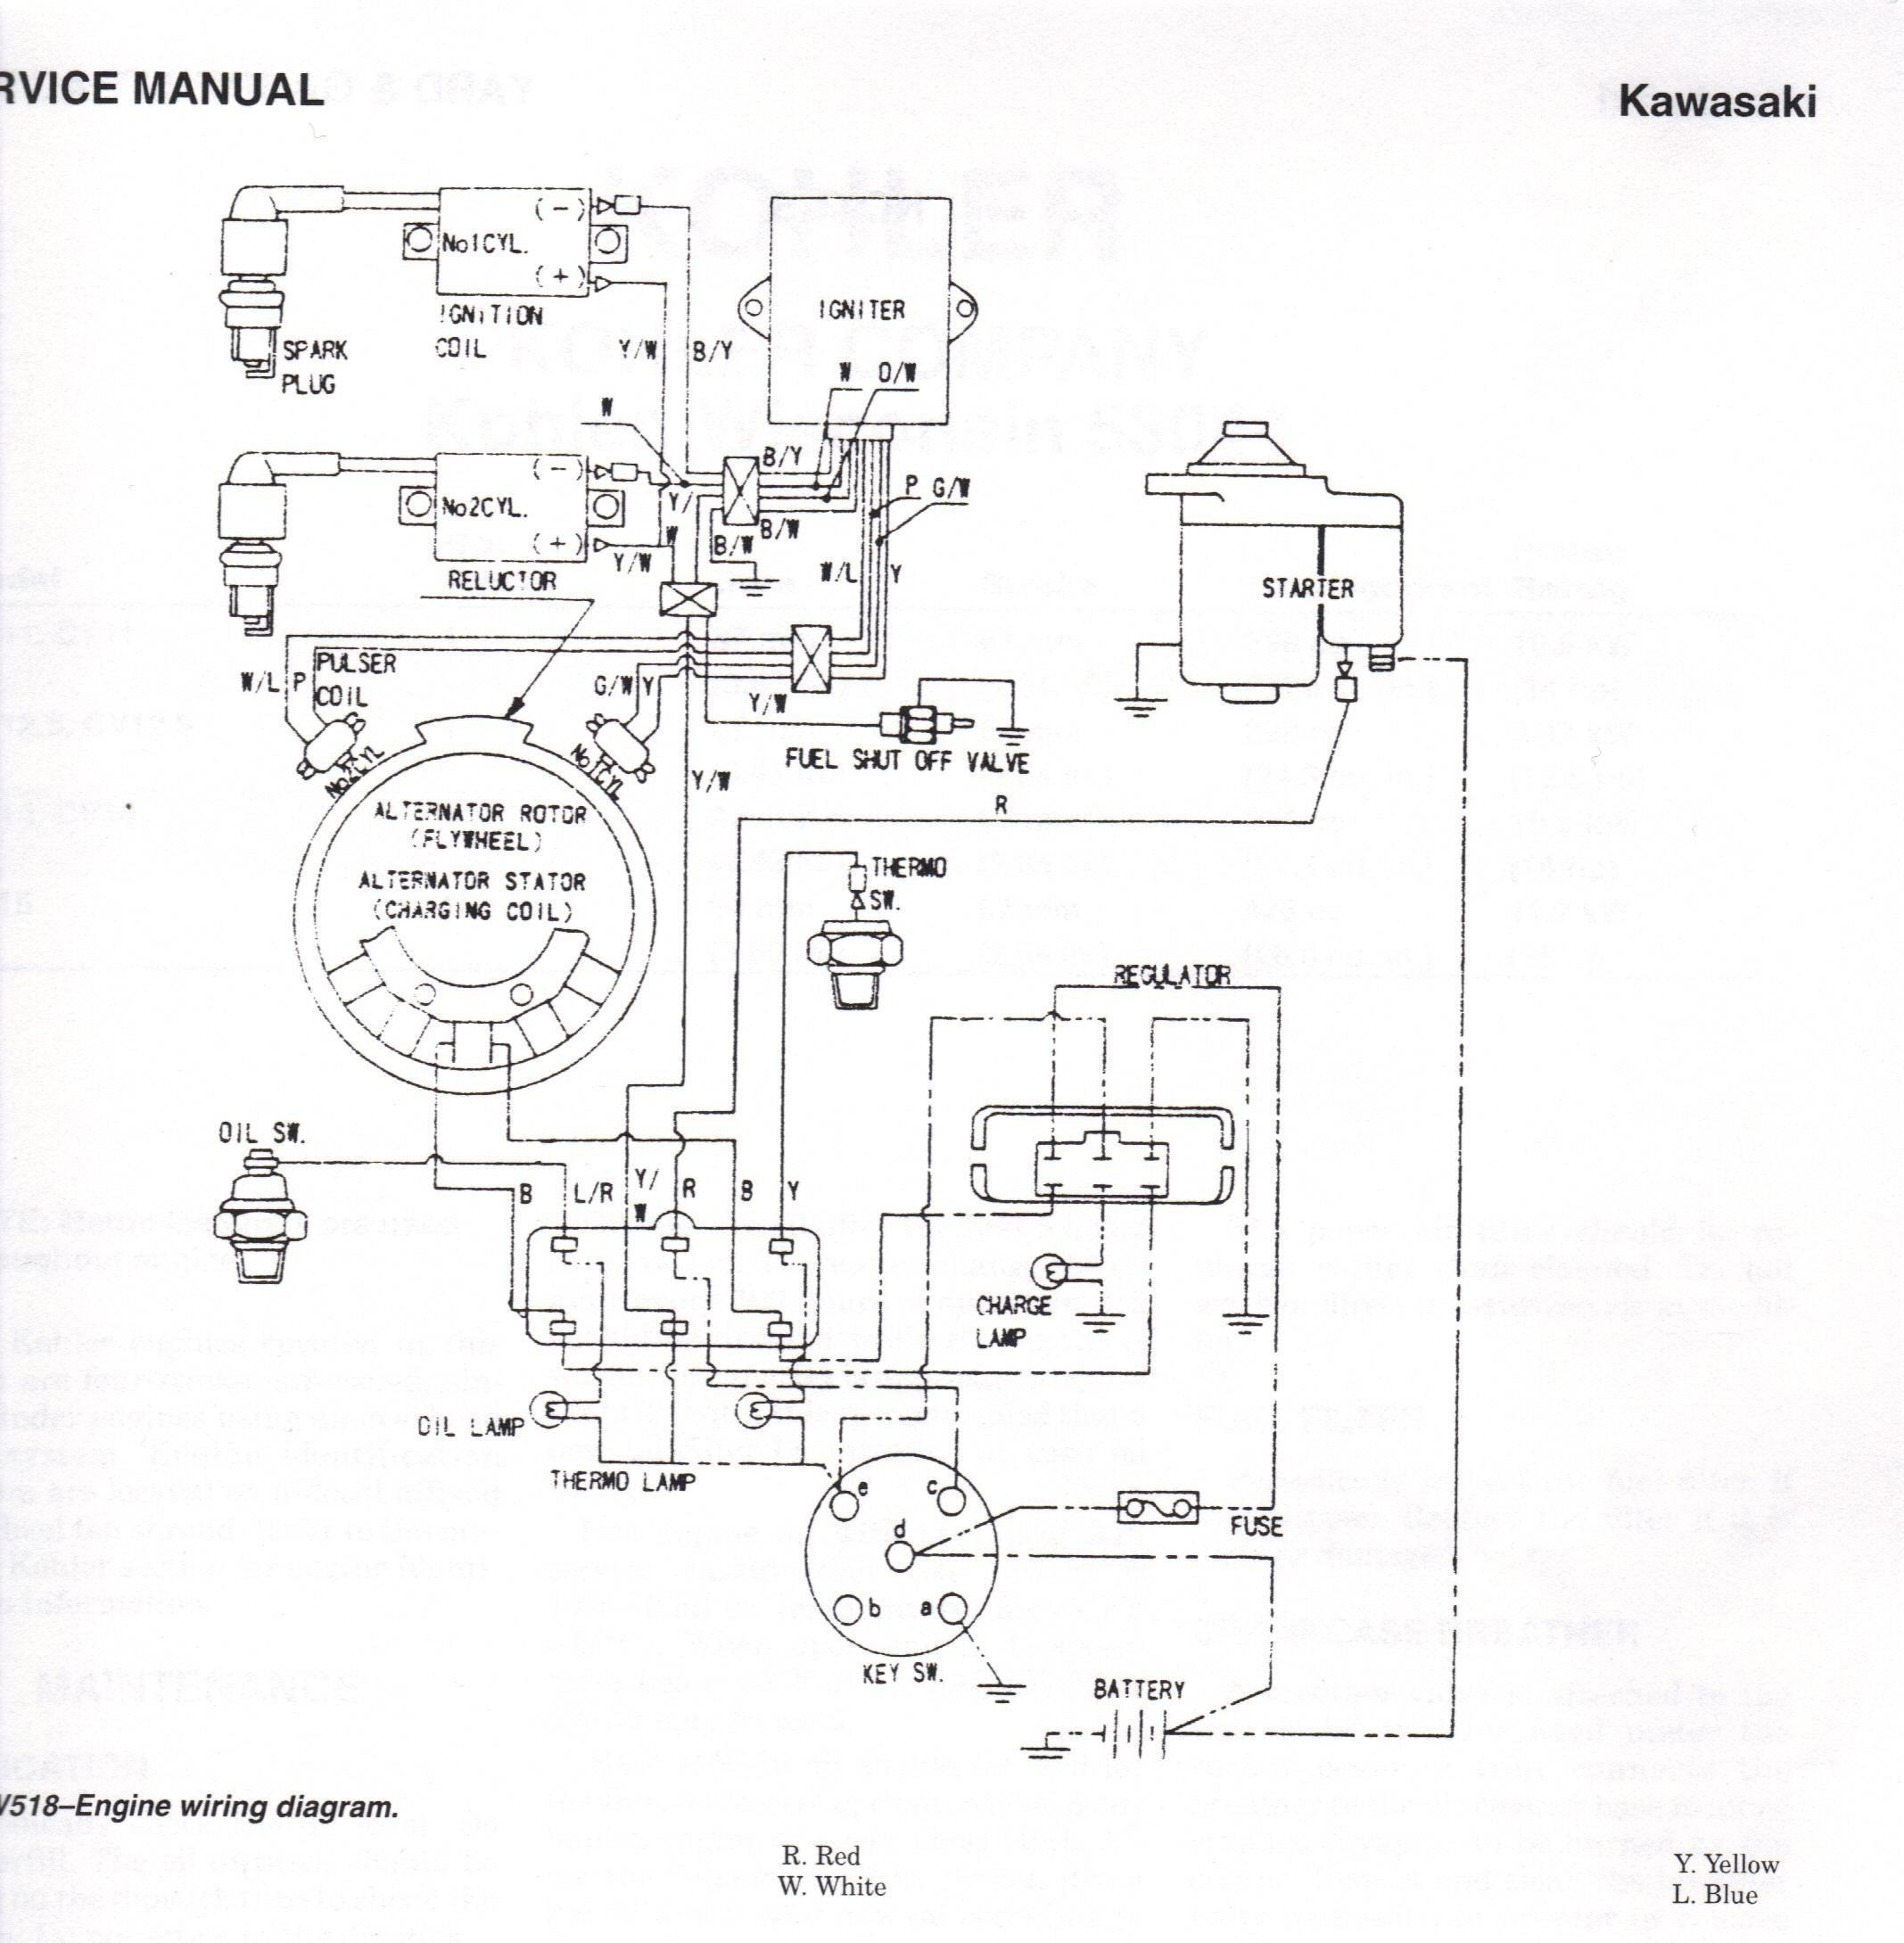 Jd Gator 4×2 Wiring Diagram Ct 9164] Gator Xuv 620i Wiring Diagram Of Jd Gator 4×2 Wiring Diagram